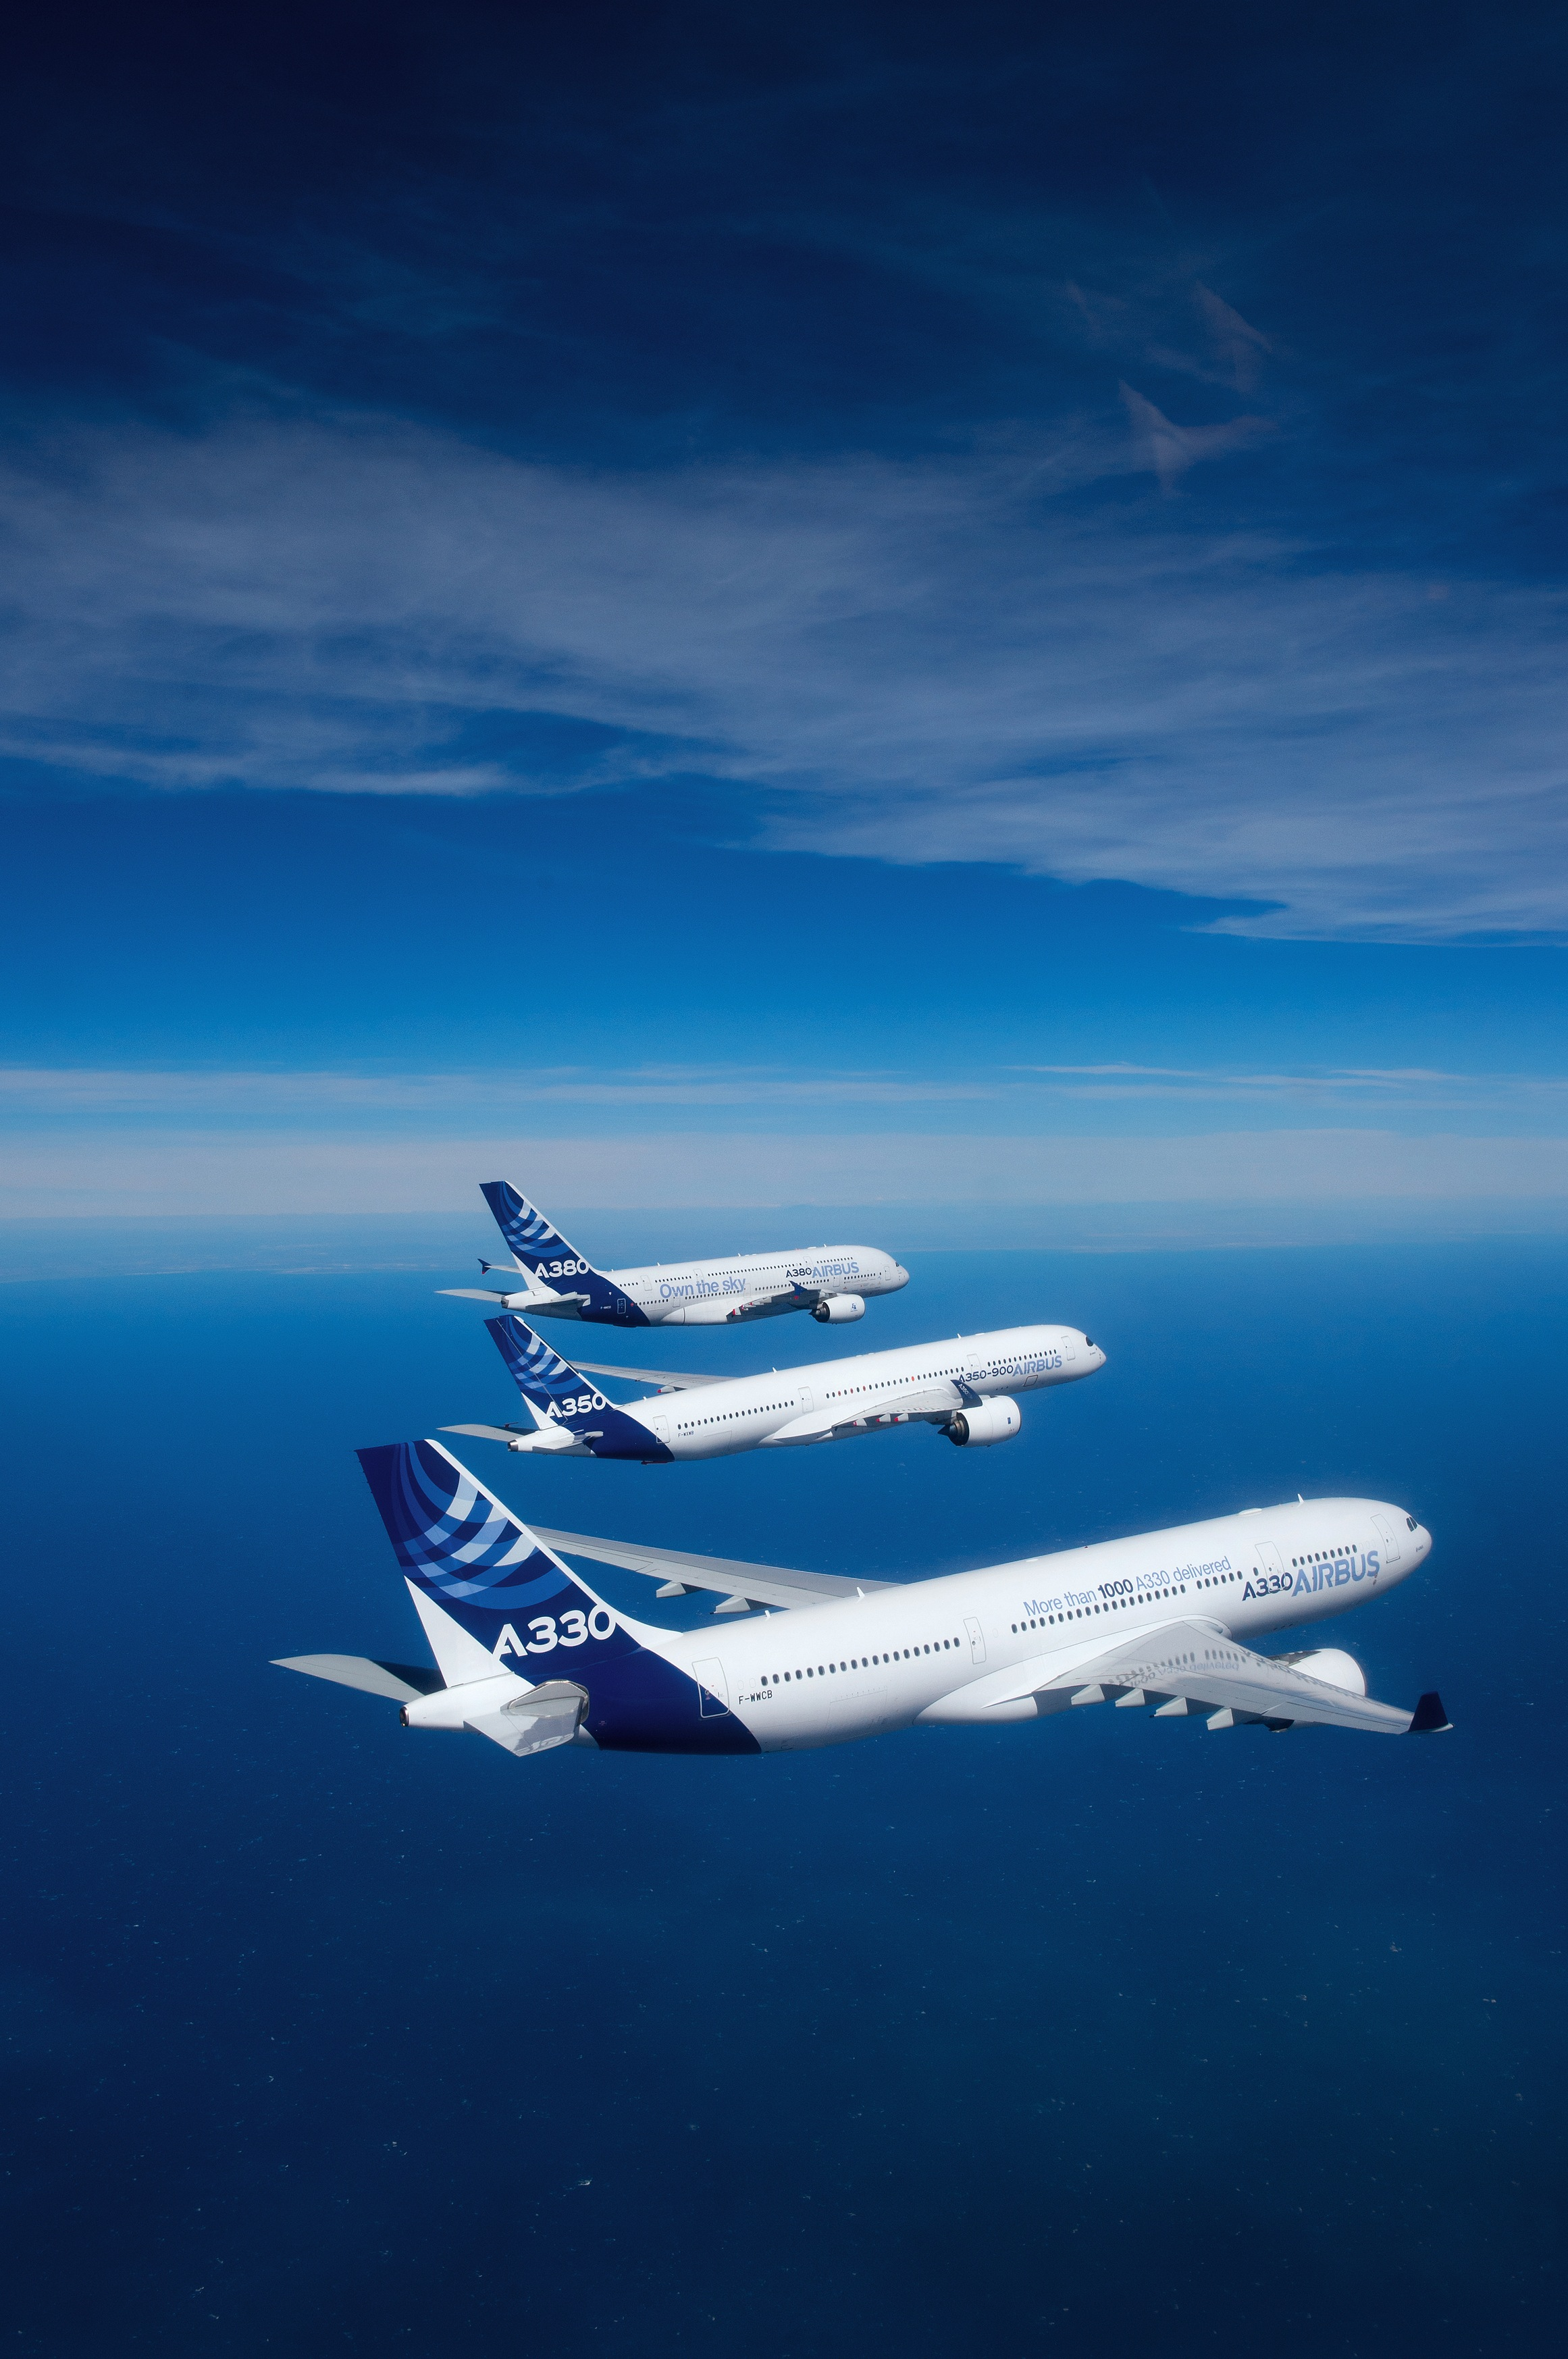 The Airbus widebody family in its first formation. Image: Airbus S.A.S.